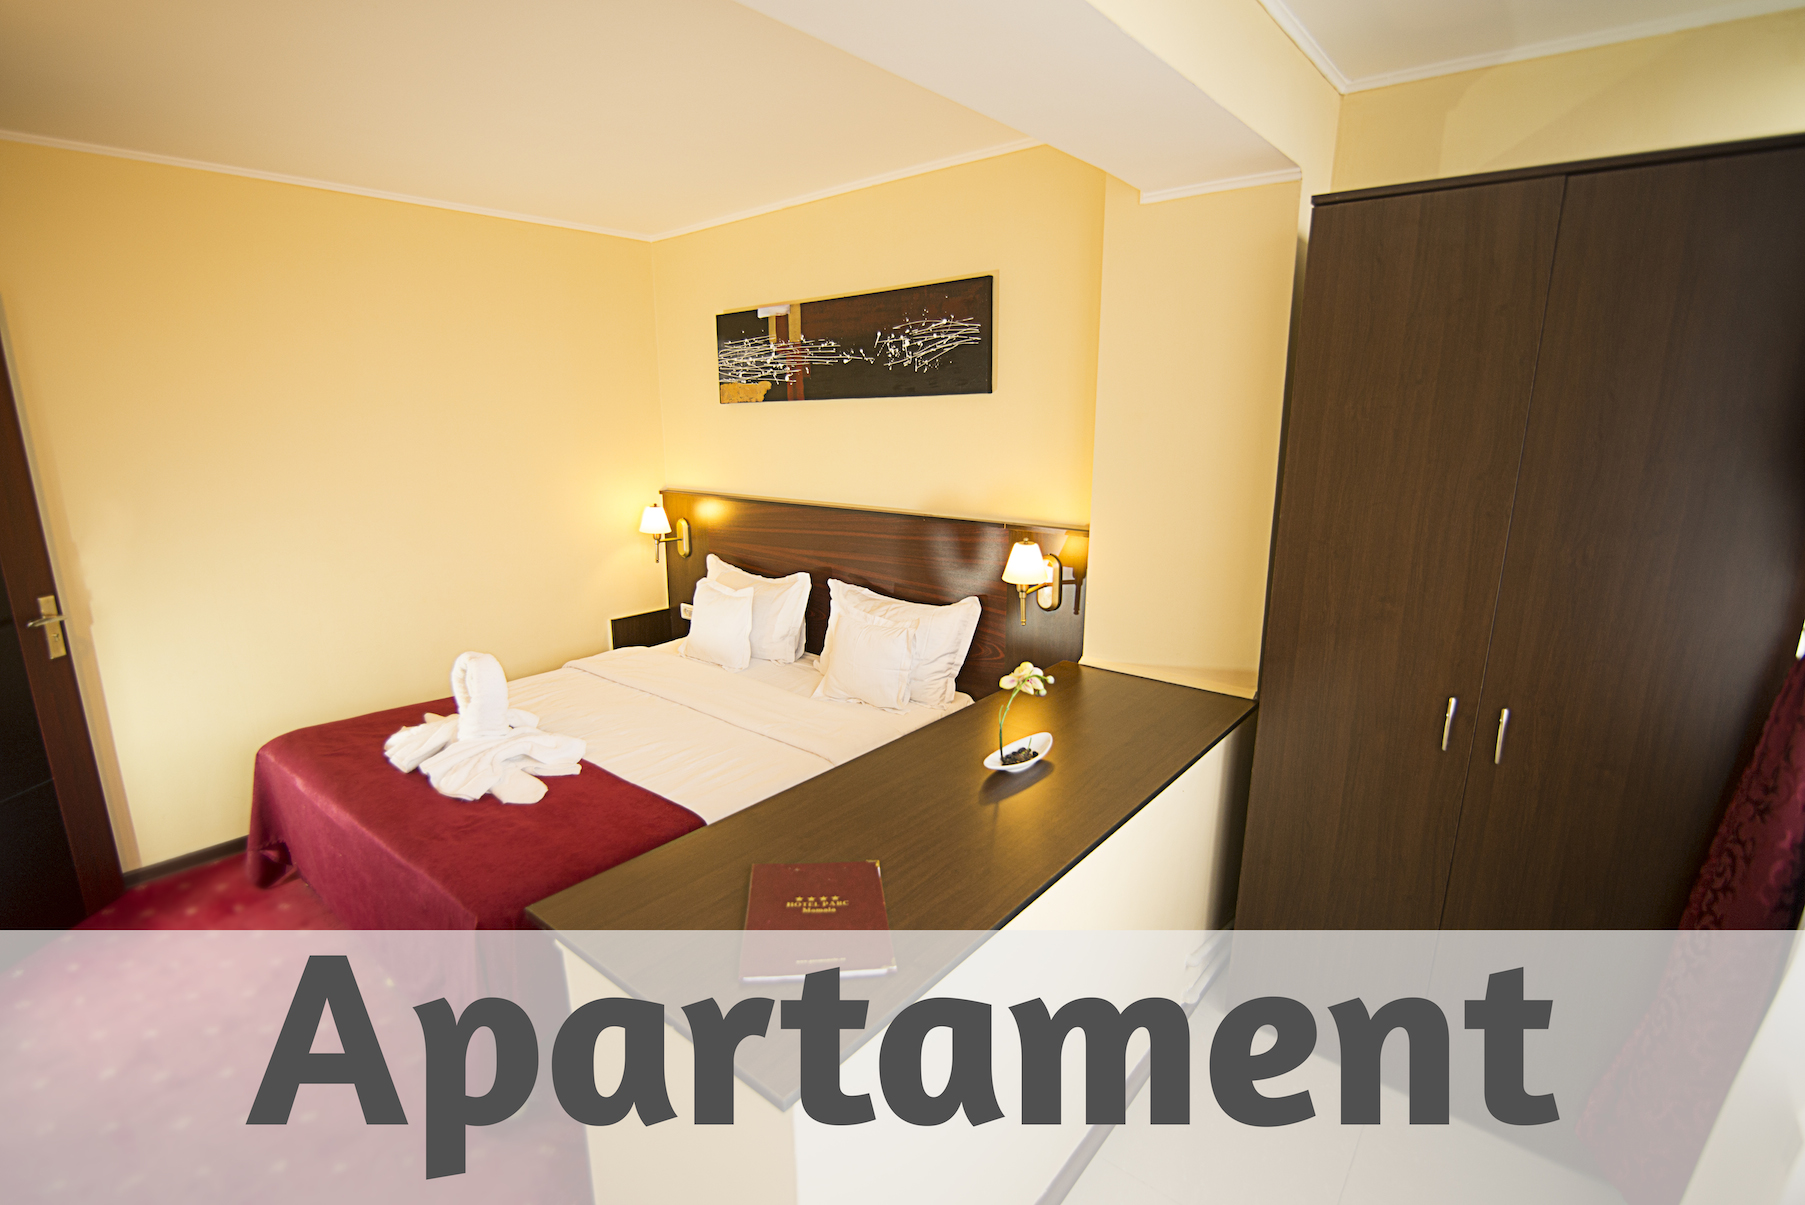 Accommodation Apartment - Mamaia